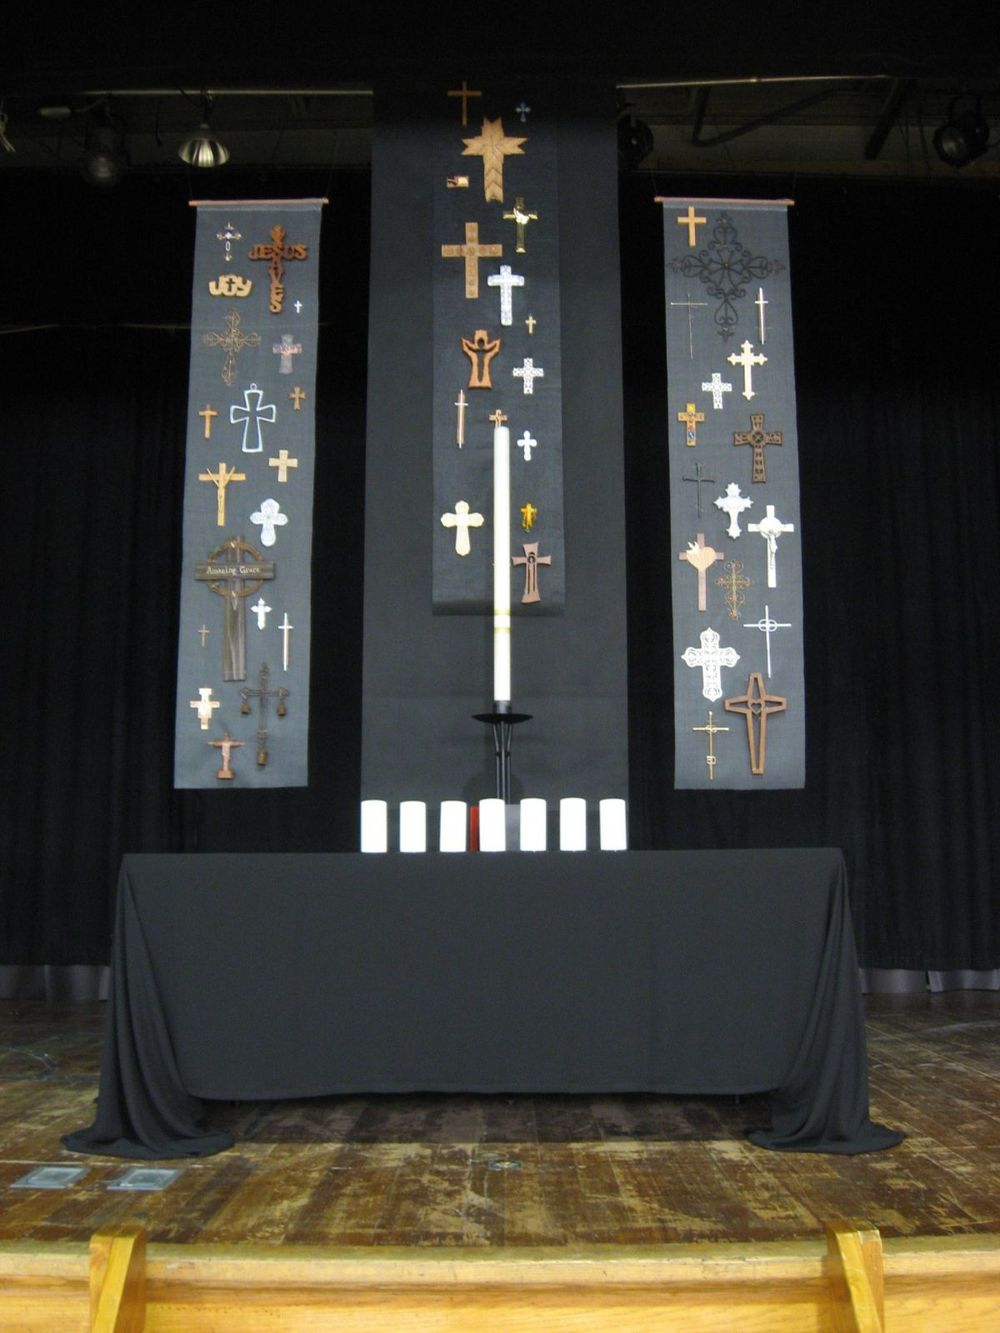 Good Friday focal point, with community devotional crosses on gray window screening